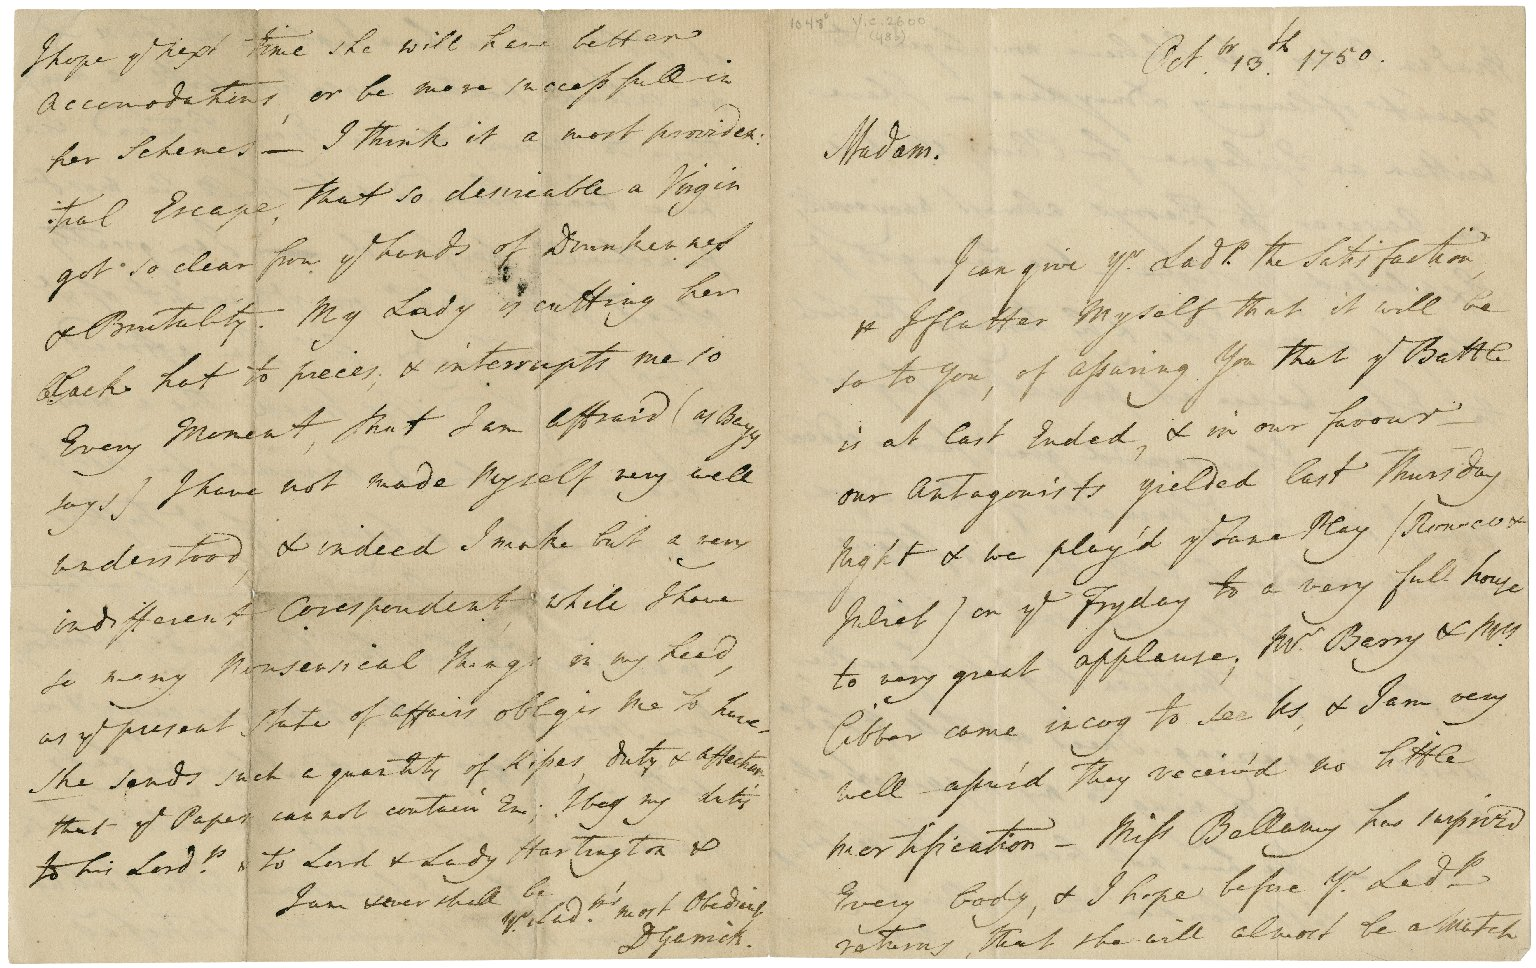 Letters signed from David Garrick to the Countess of Burlington, October 13, 1750